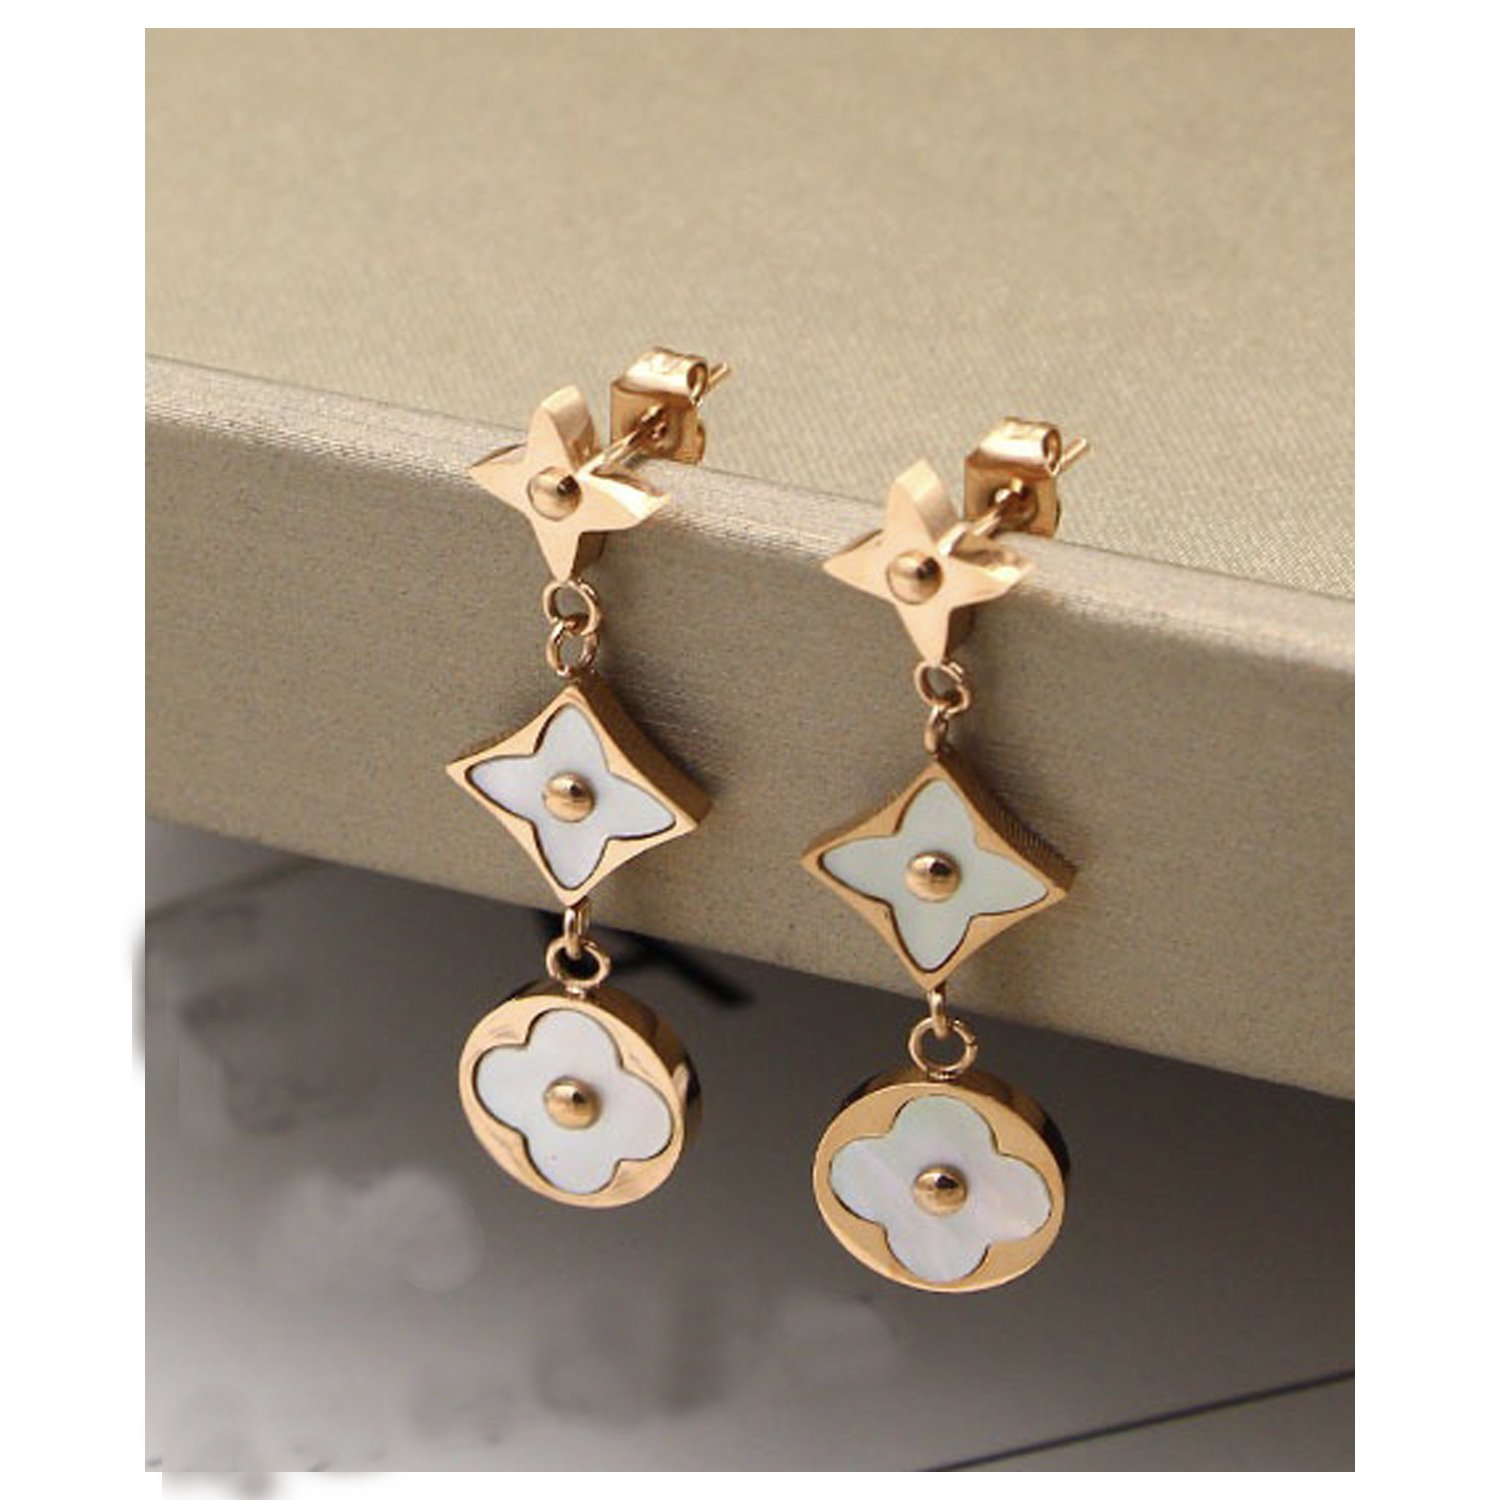 Women's Fashion Earrings Korean Style Three Icon Drop Earrings Stainless Steel Rose Gold (White)